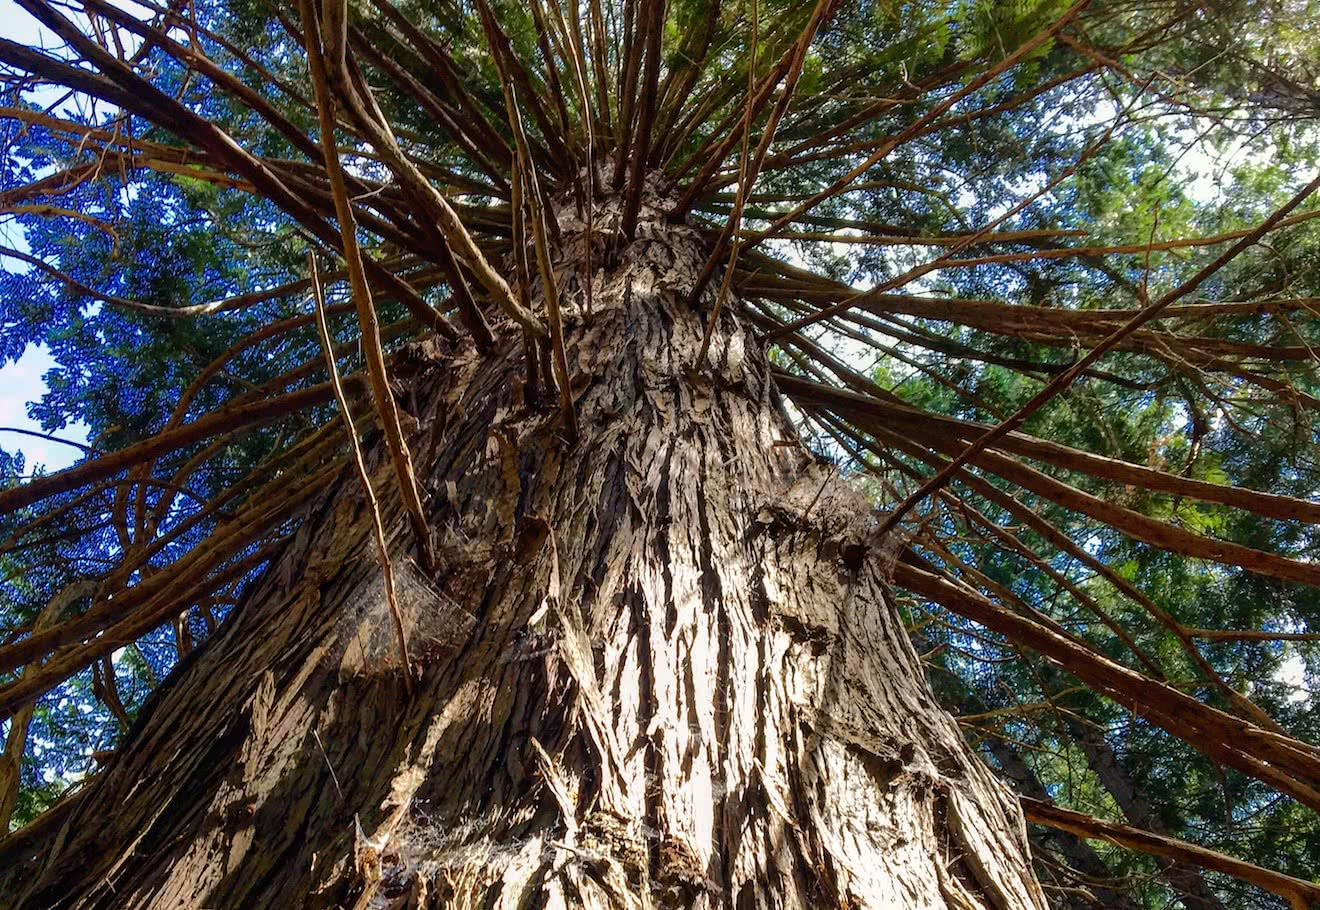 A huge cedar tree found on Kinghorn Island in Desolation Sound